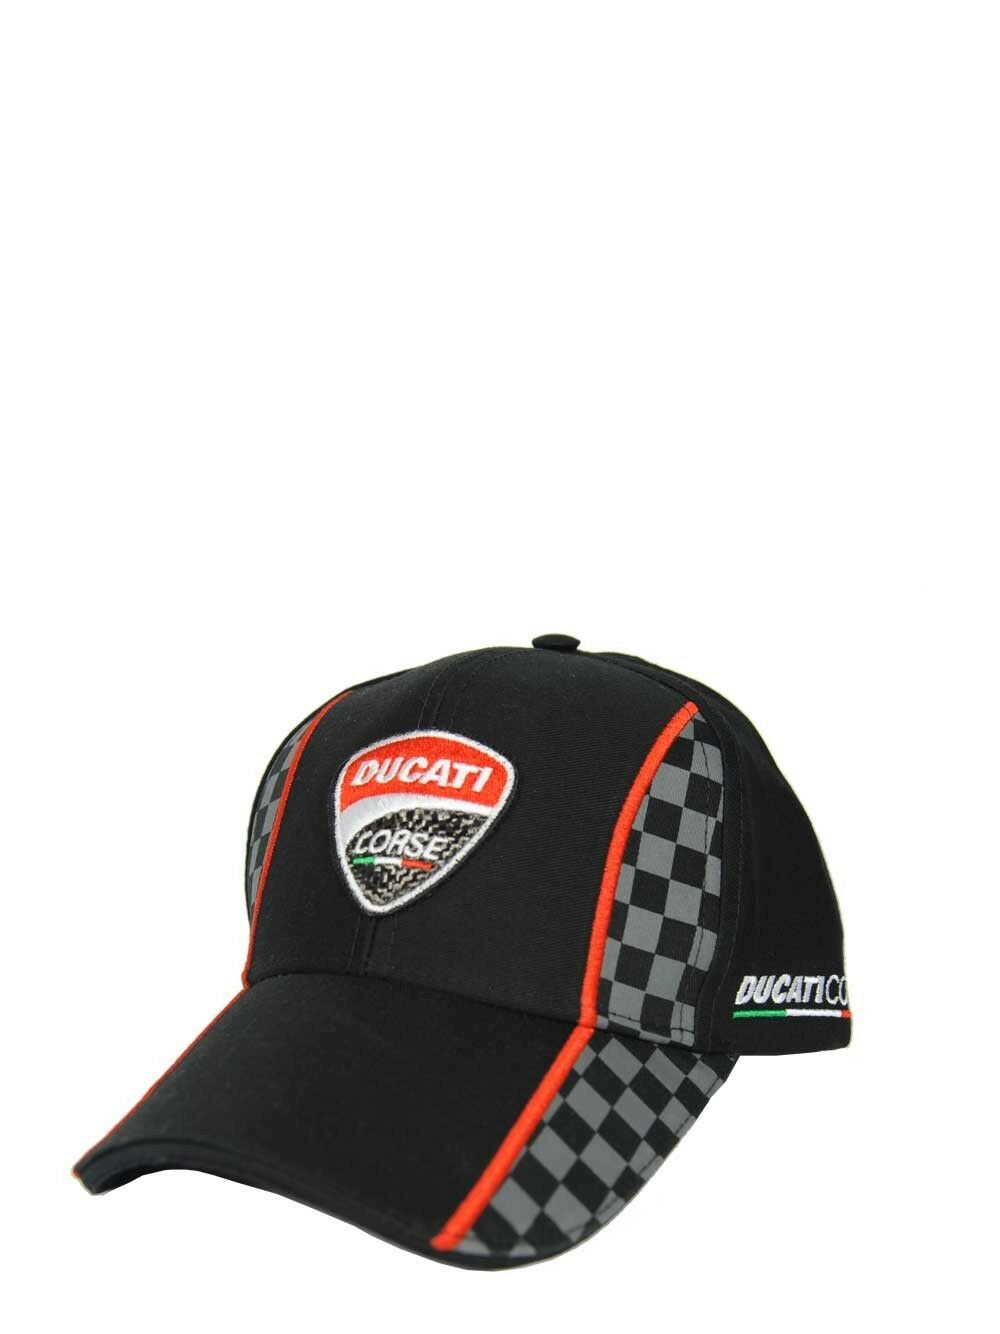 Neu Official Ducati  Corse Kappe - 15 46001  the newest brands outlet online